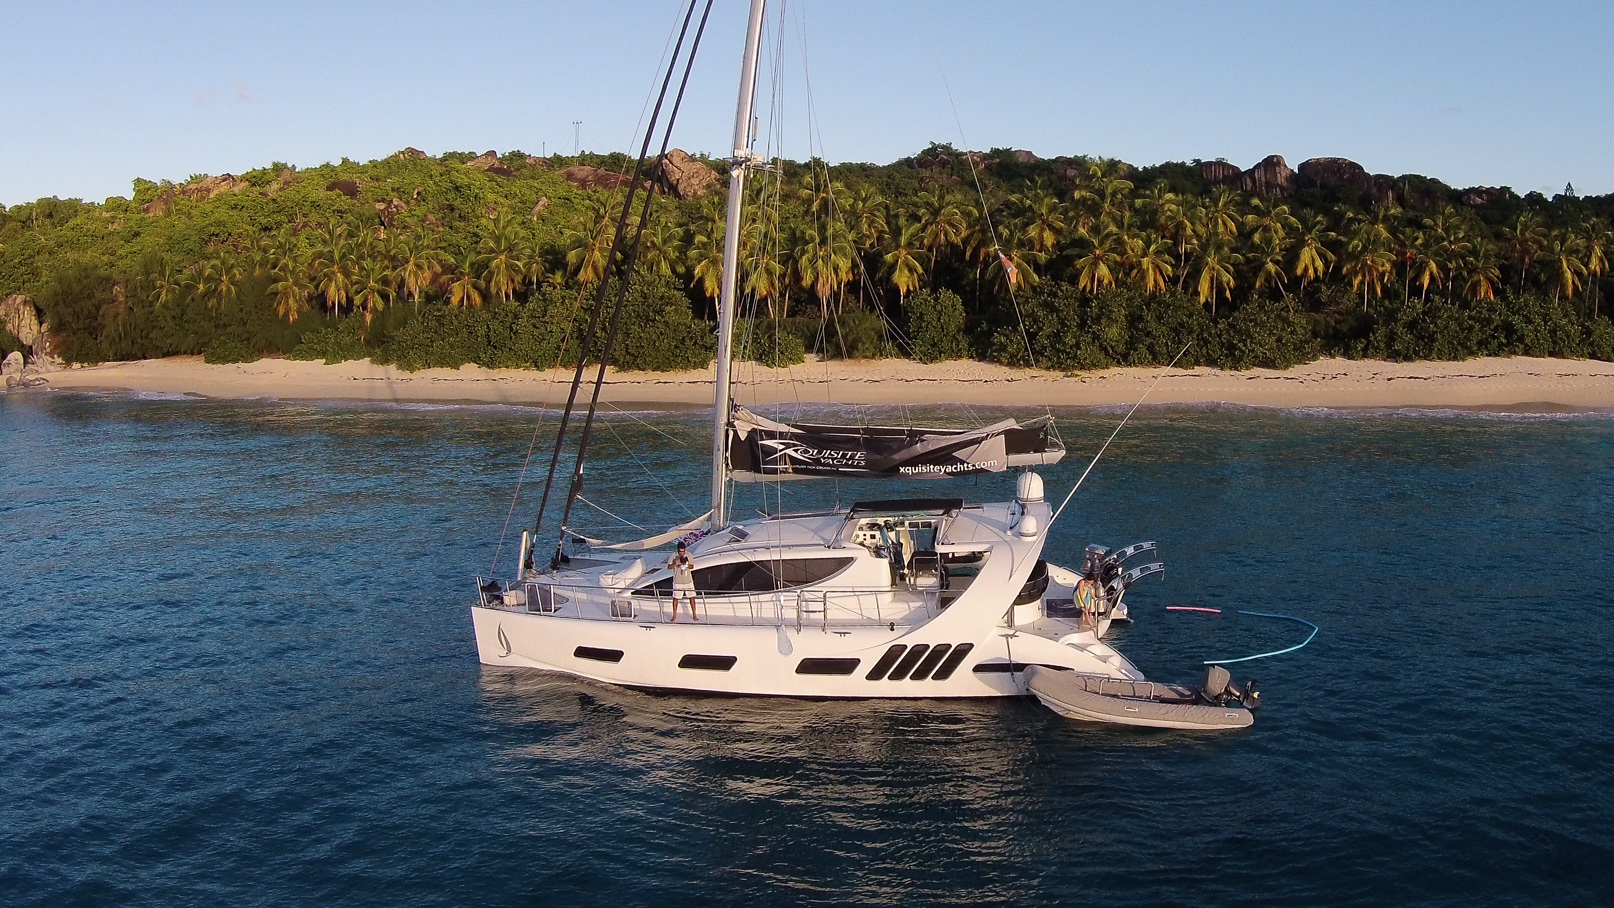 British Virgin Islands, Village Cay Marina. Luxury sailboat